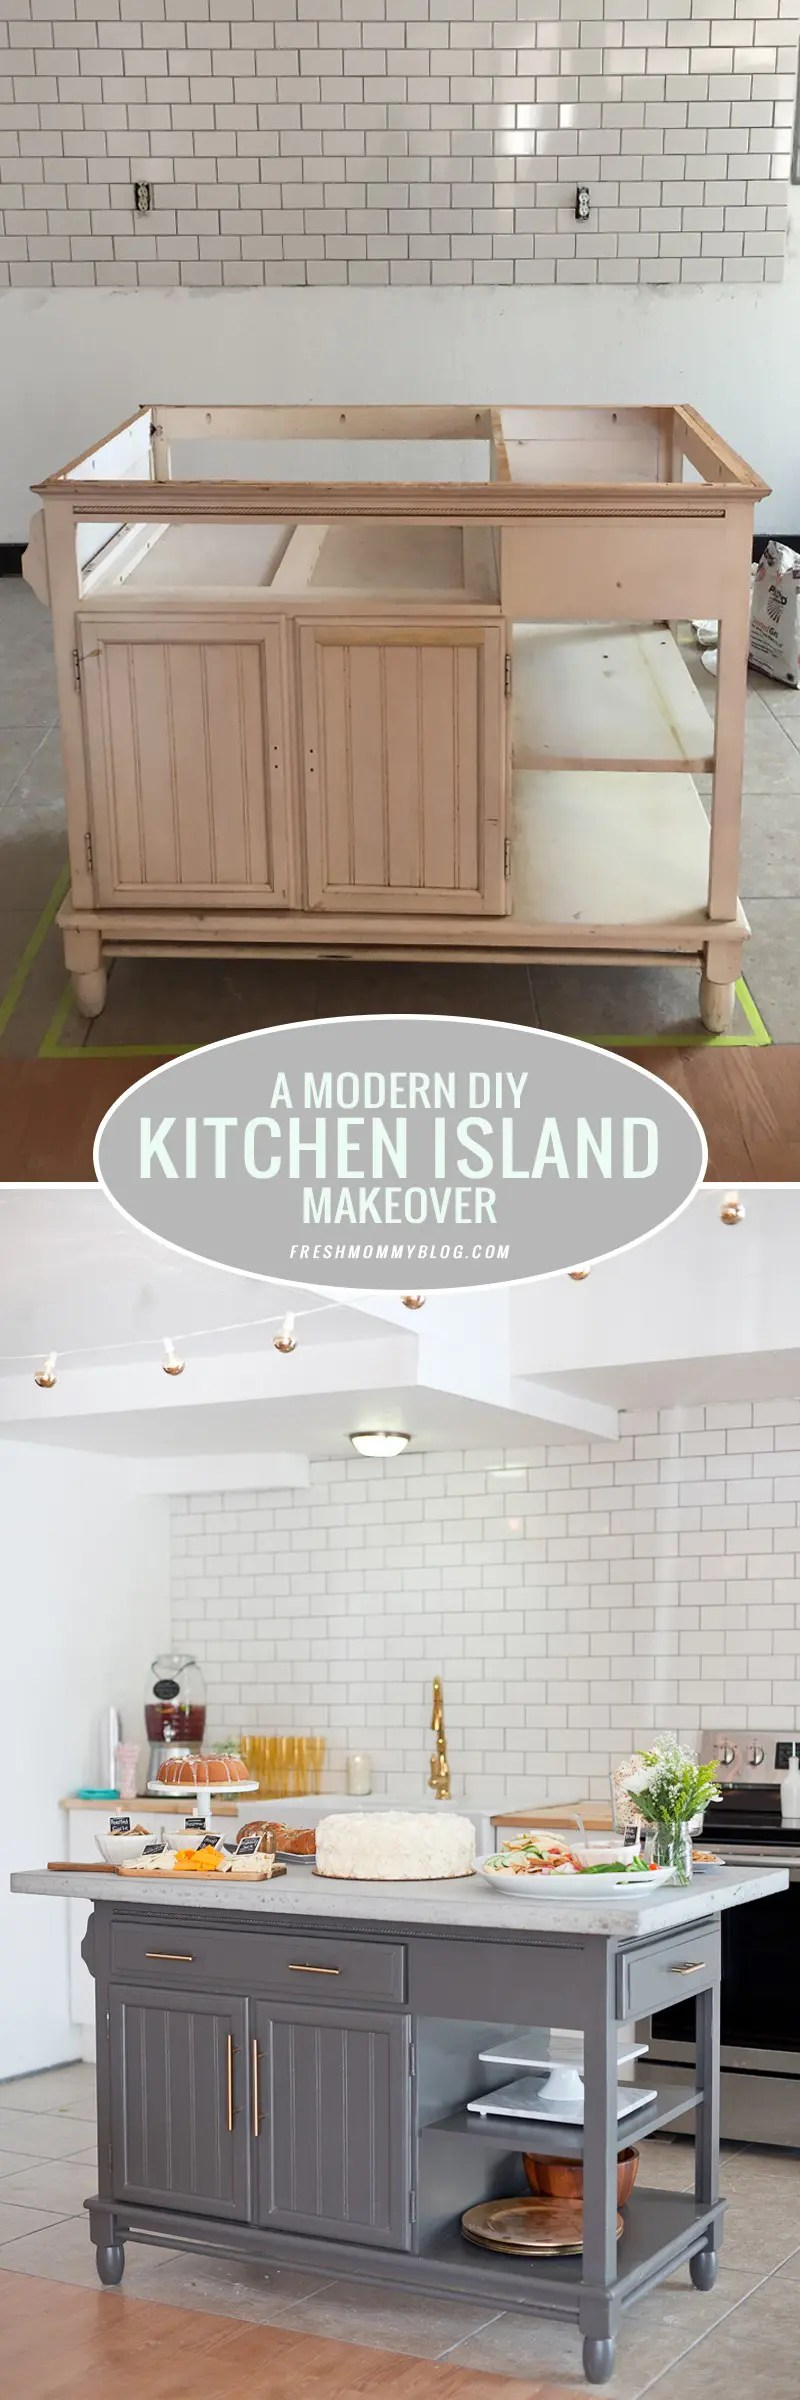 A Modern DIY Kitchen Island Makeover on a Bud Fresh Mommy